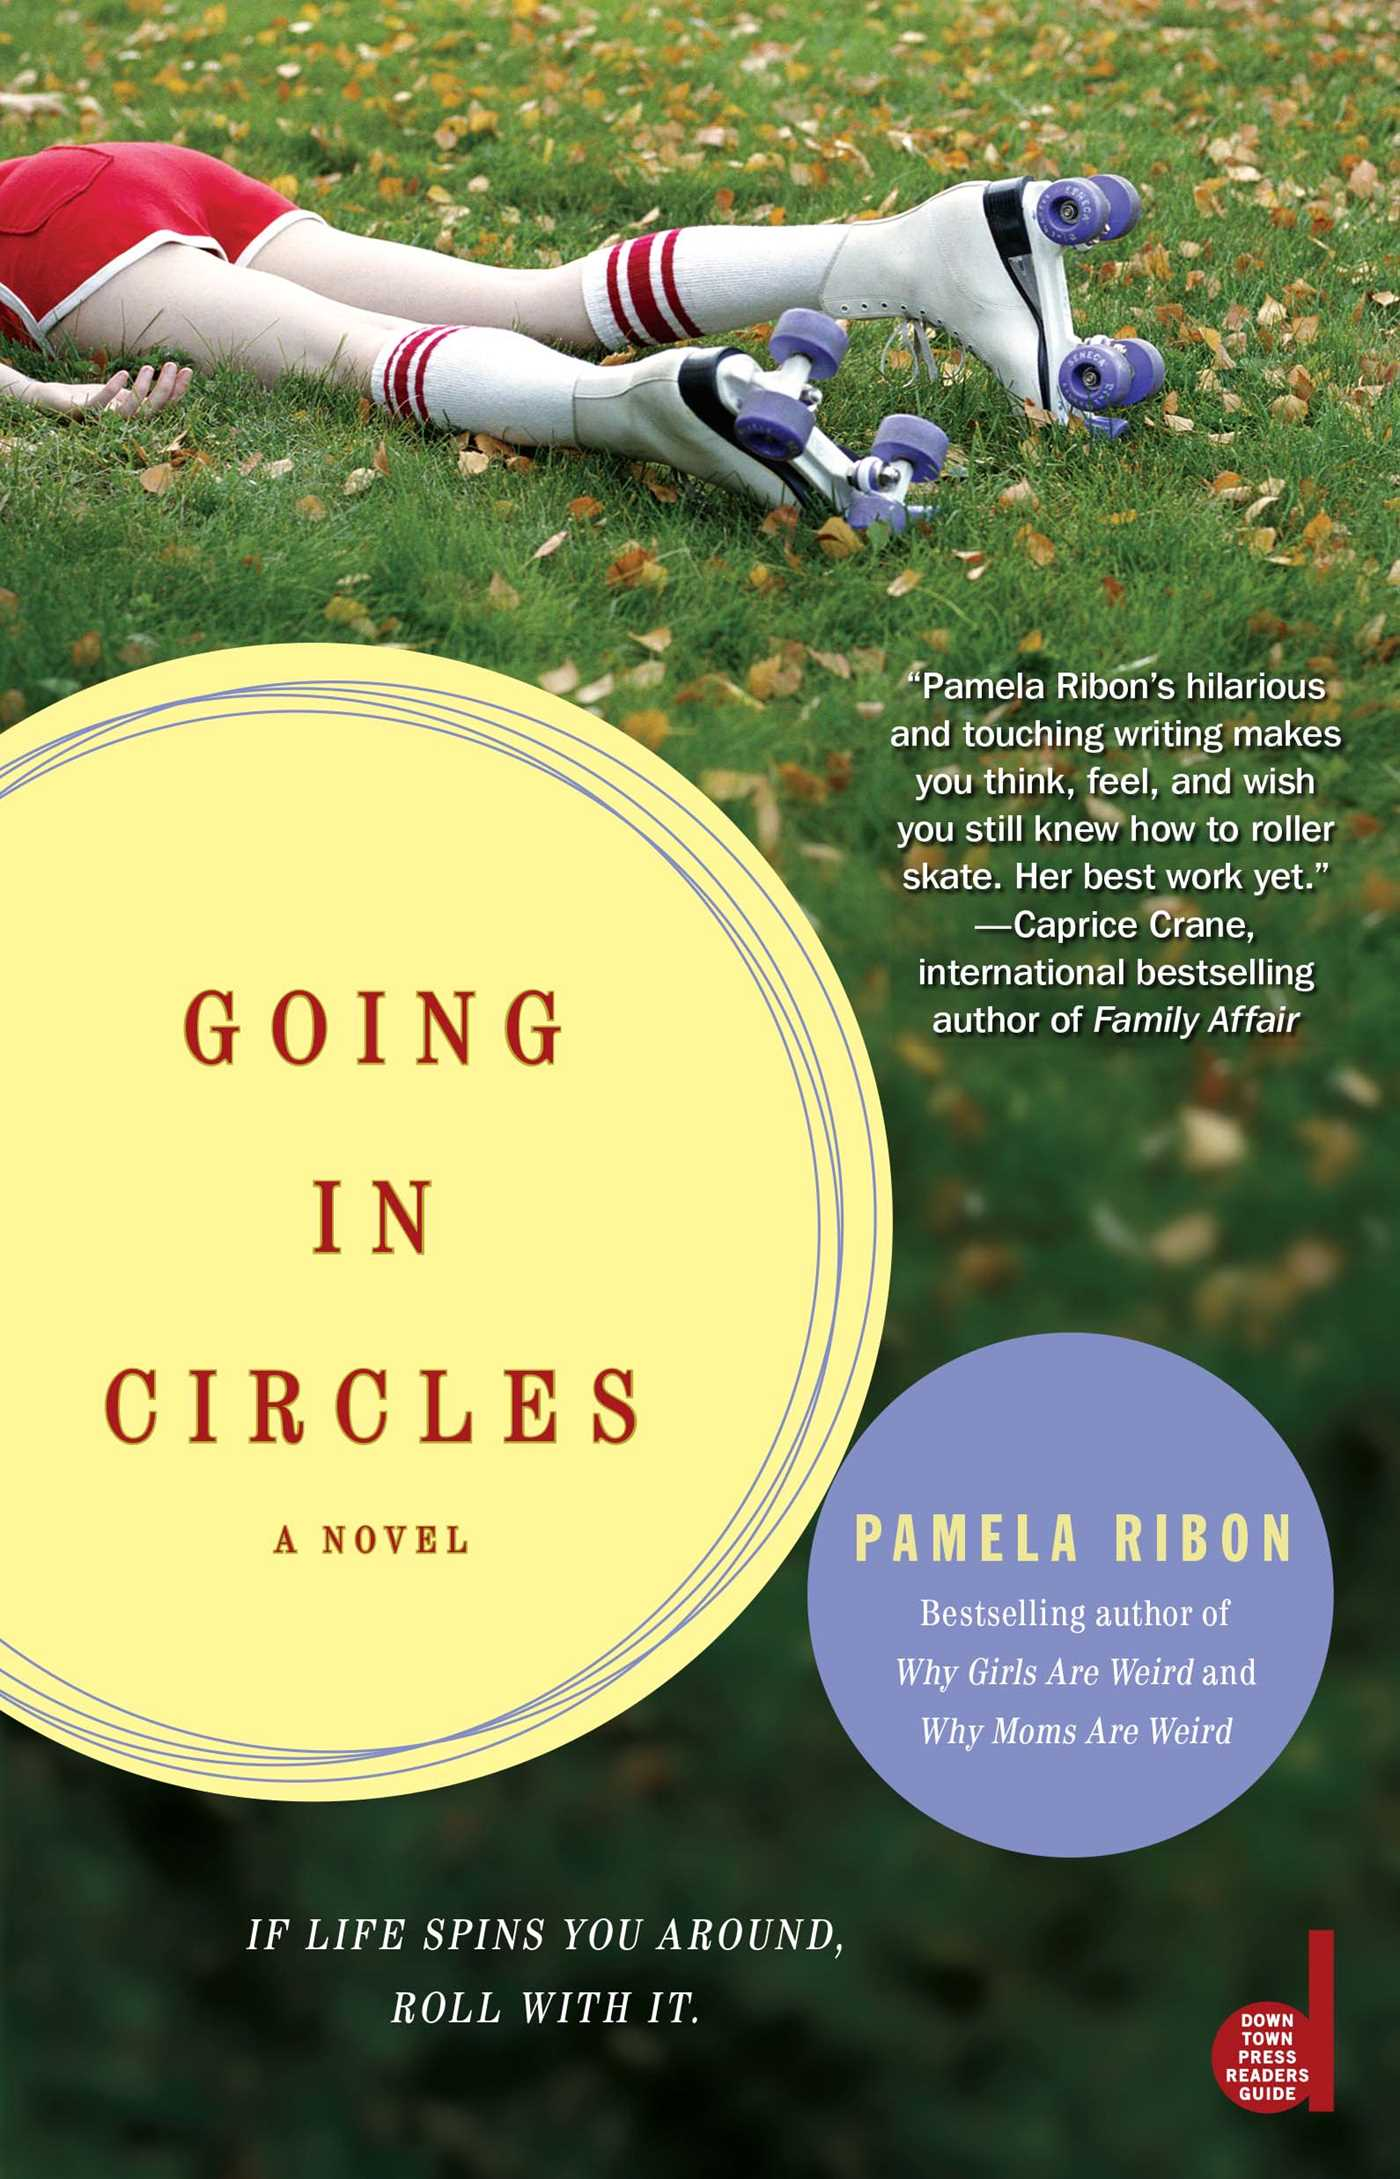 Going-in-circles-9781416503866_hr